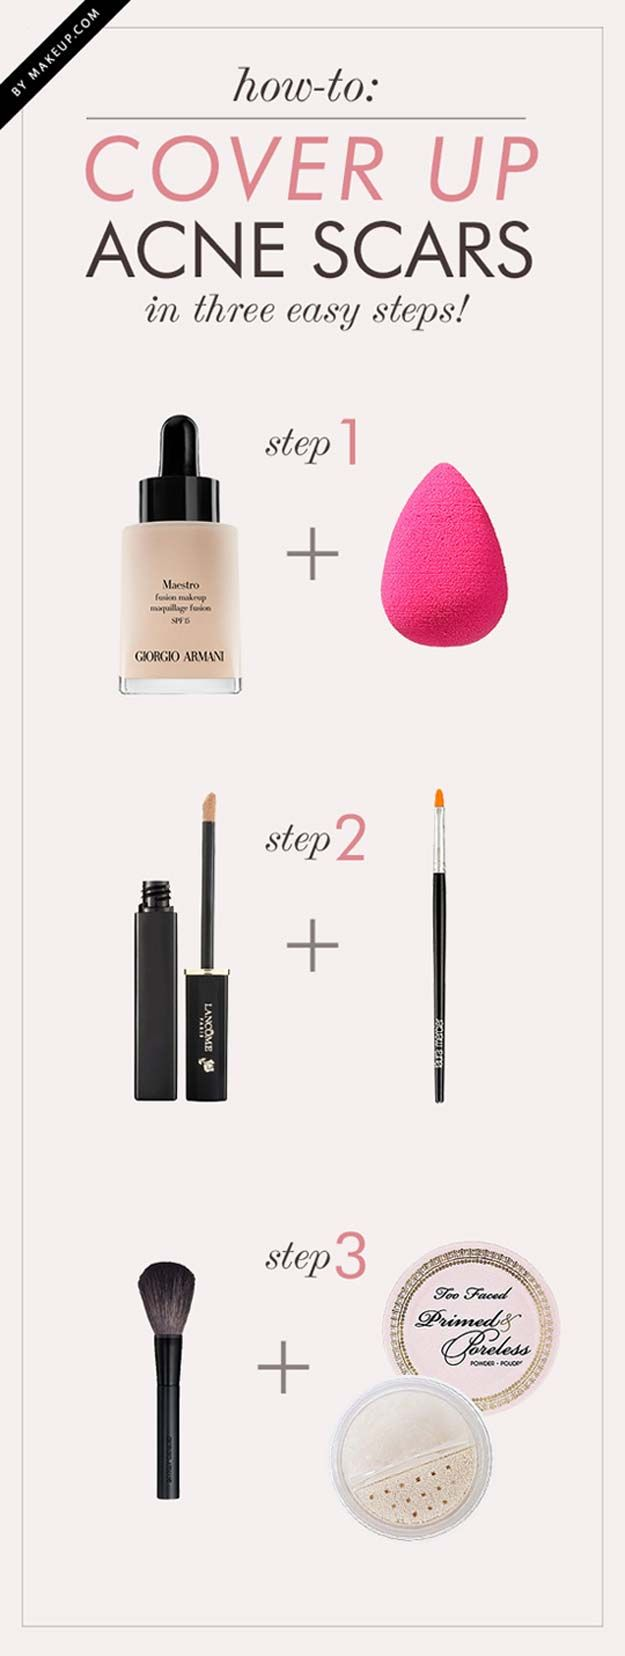 Best Beauty Hacks - How do I Cover Up Acne Scars? - Easy Makeup Tutorials and Ma...